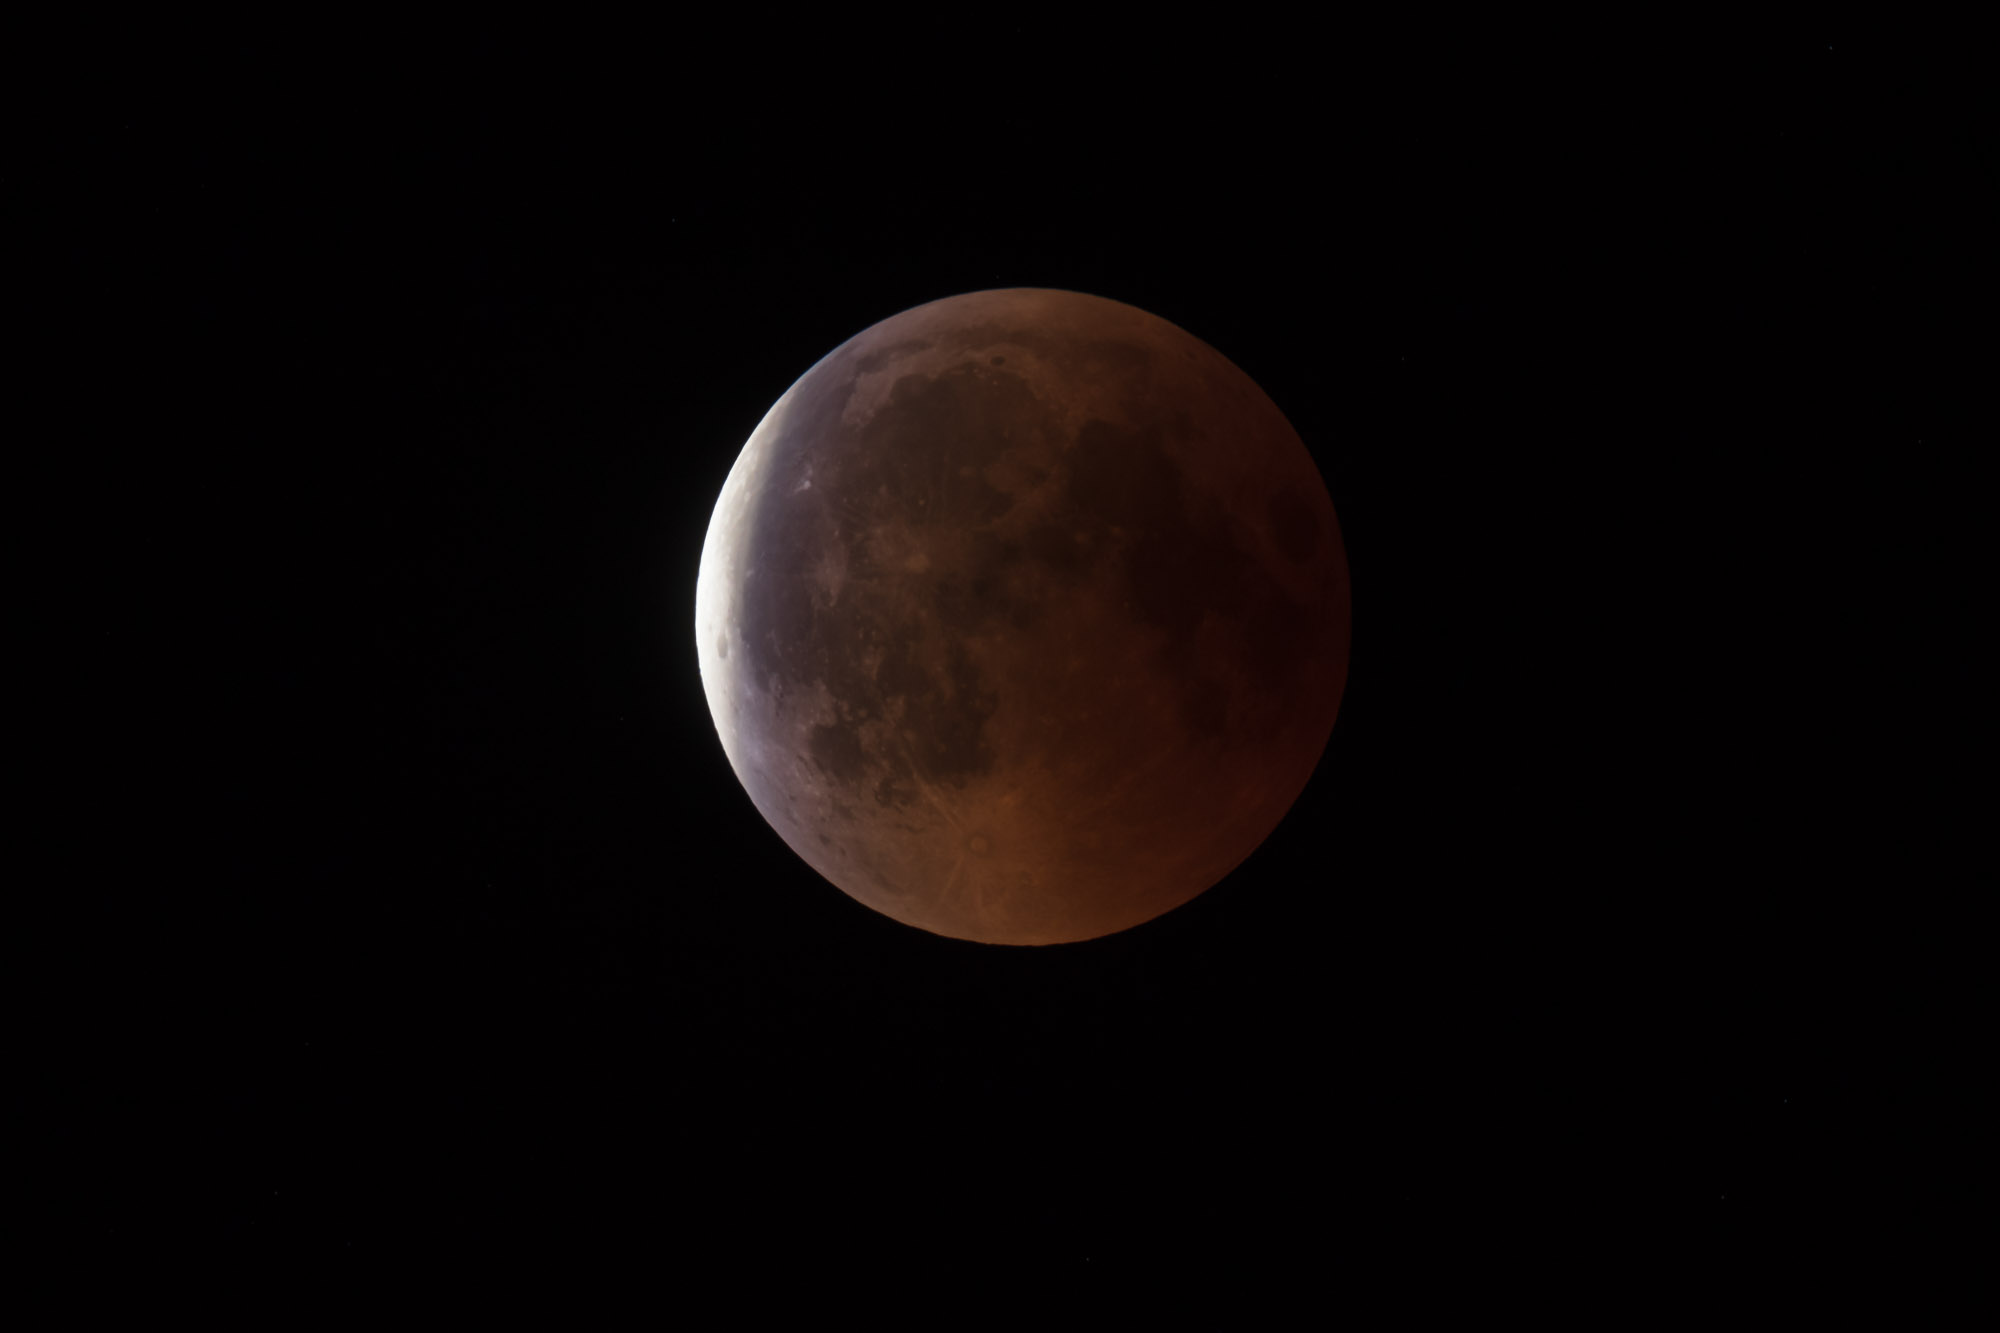 The penumbral phase of the Blood Moon